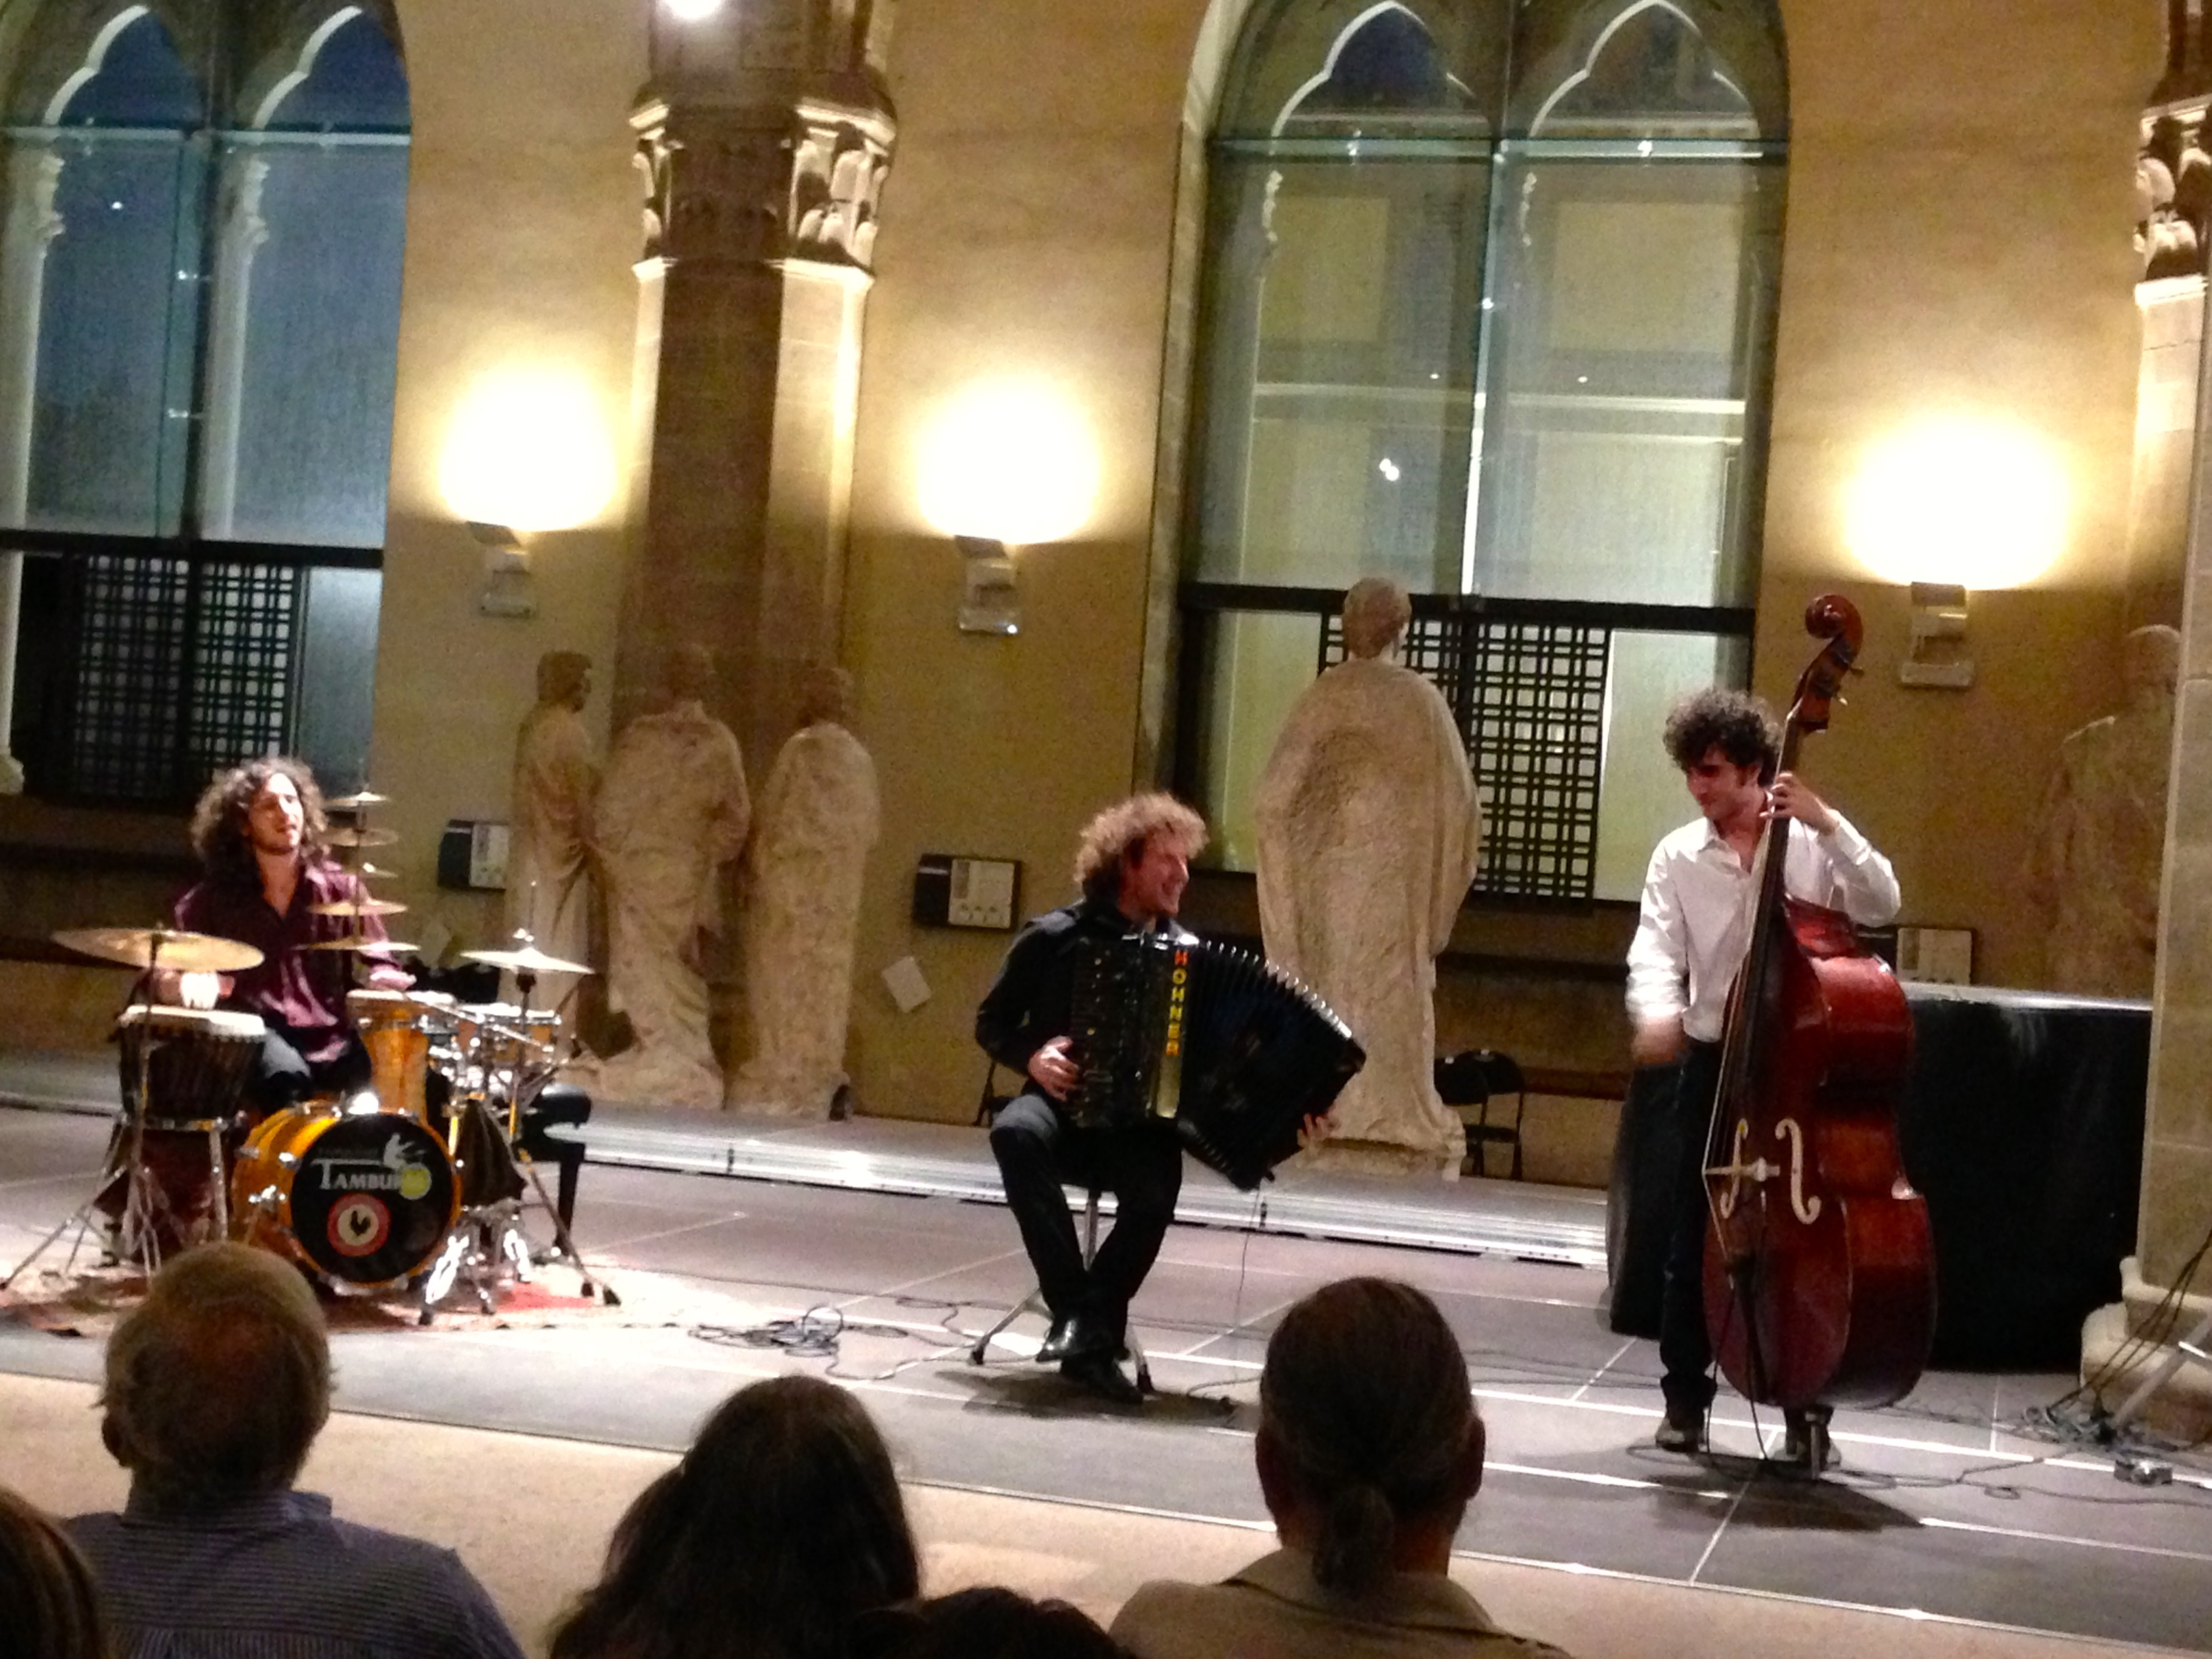 Pietro Adragna Ensemble Accordian Concert at the Museo Orsanmichele Florence